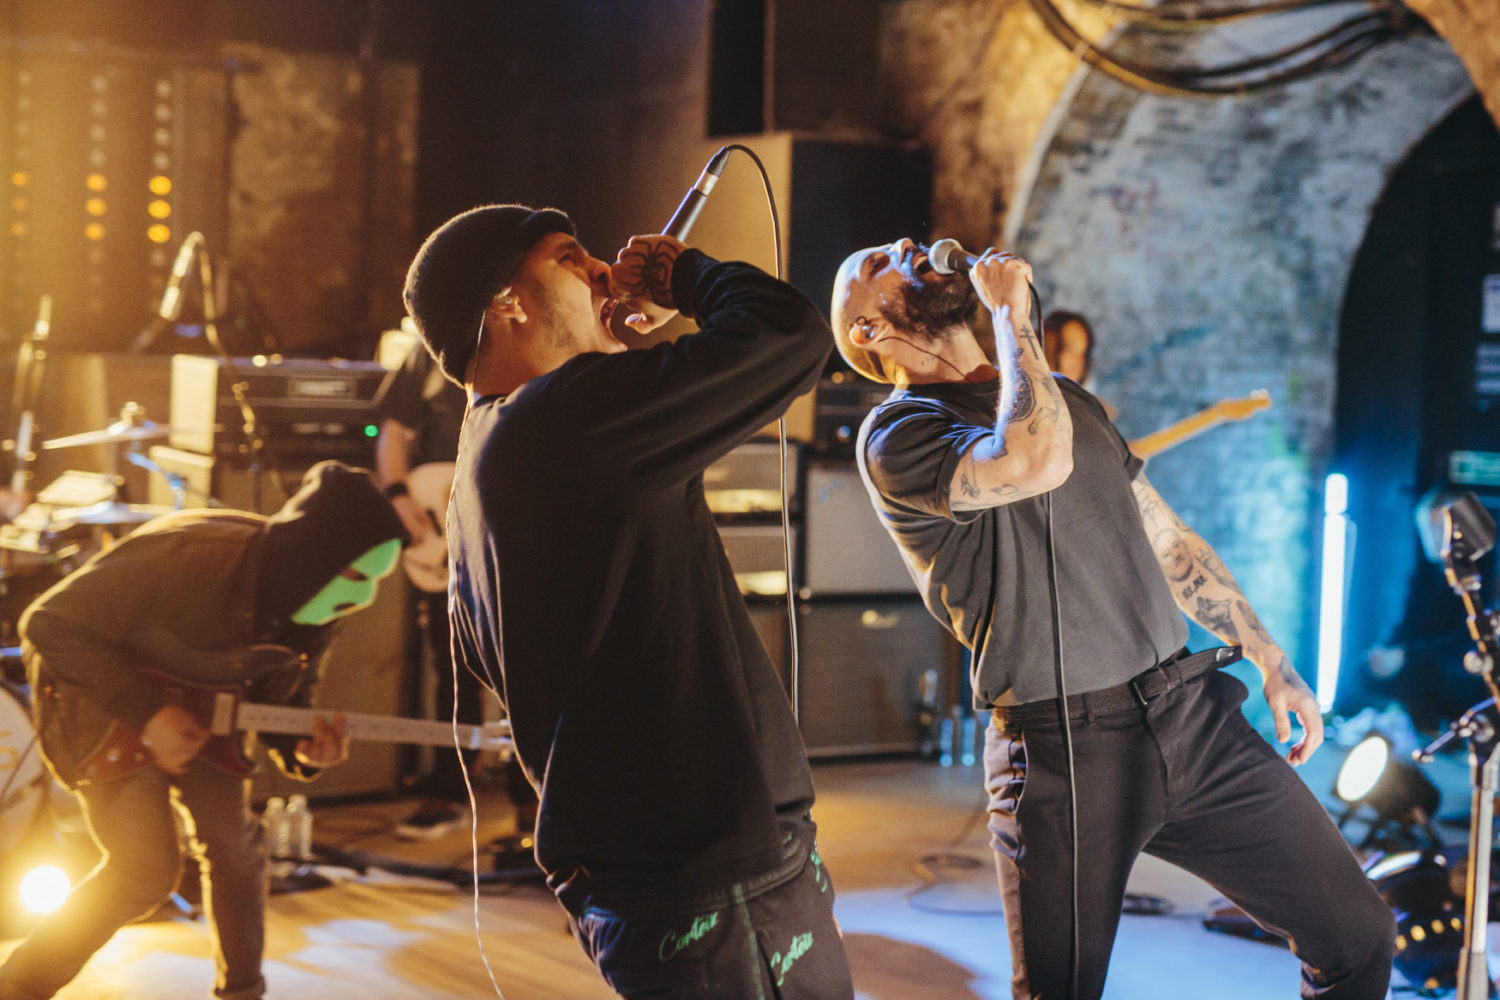 slowthai joins IDLES for new version of 'Model Village'